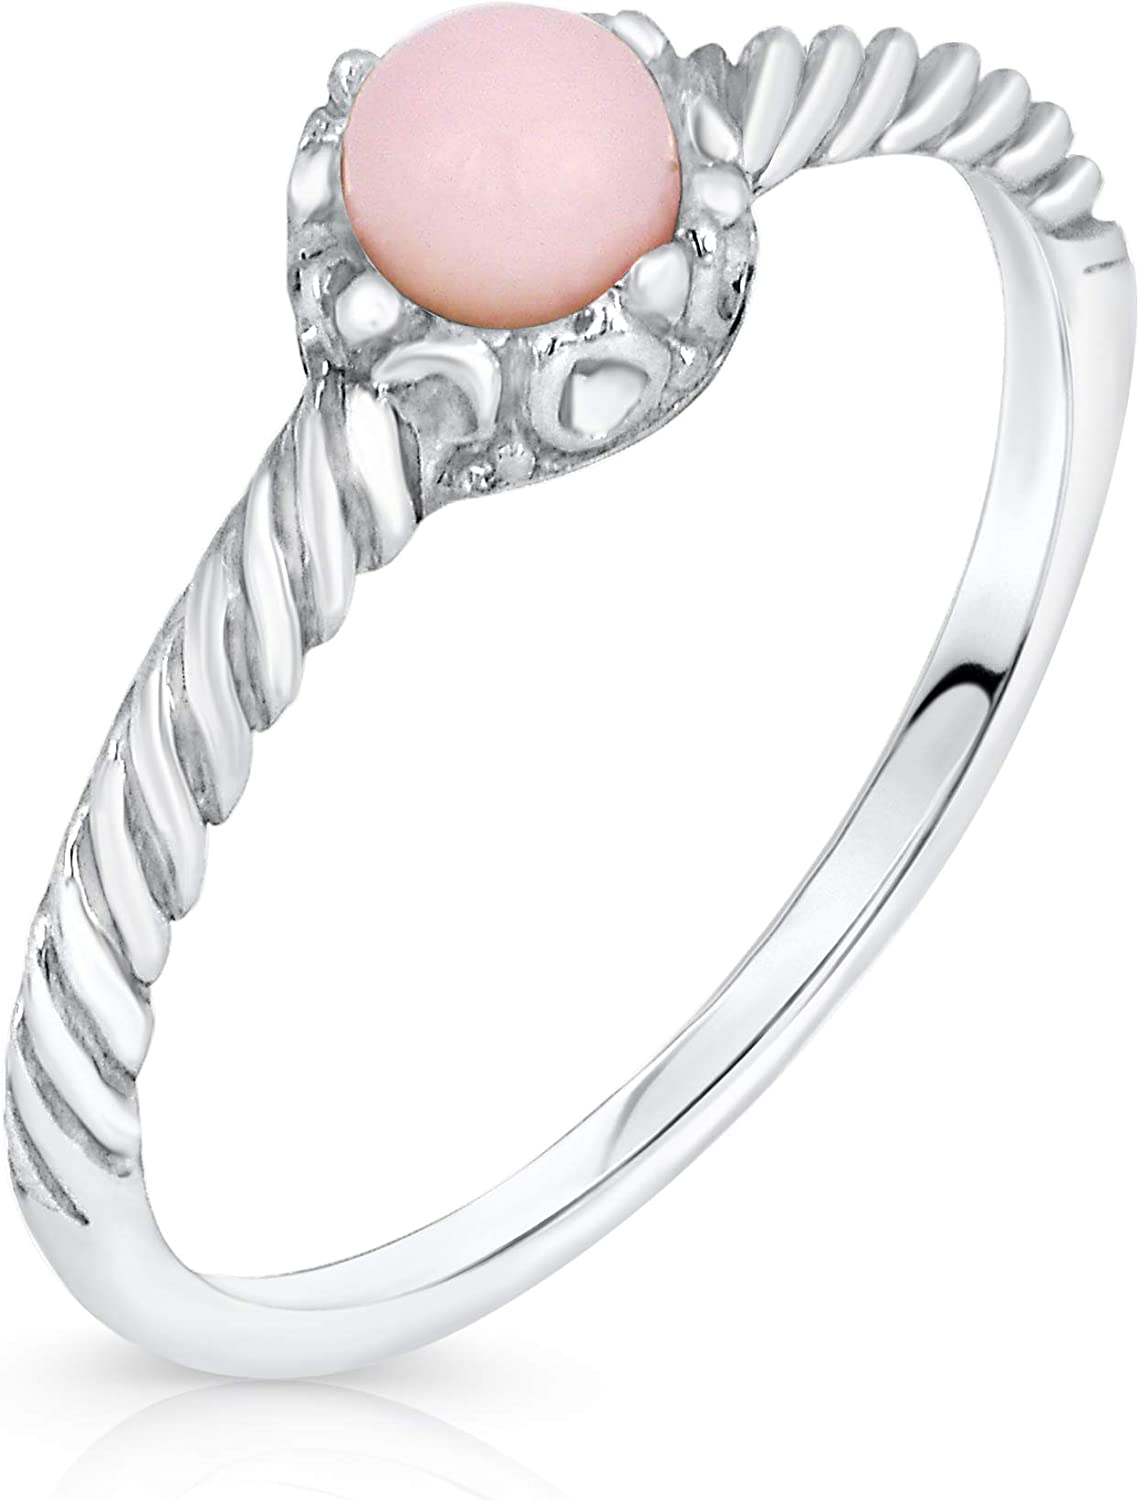 Caratera Solitaire Jeweled Rings 925 Sterling Silver